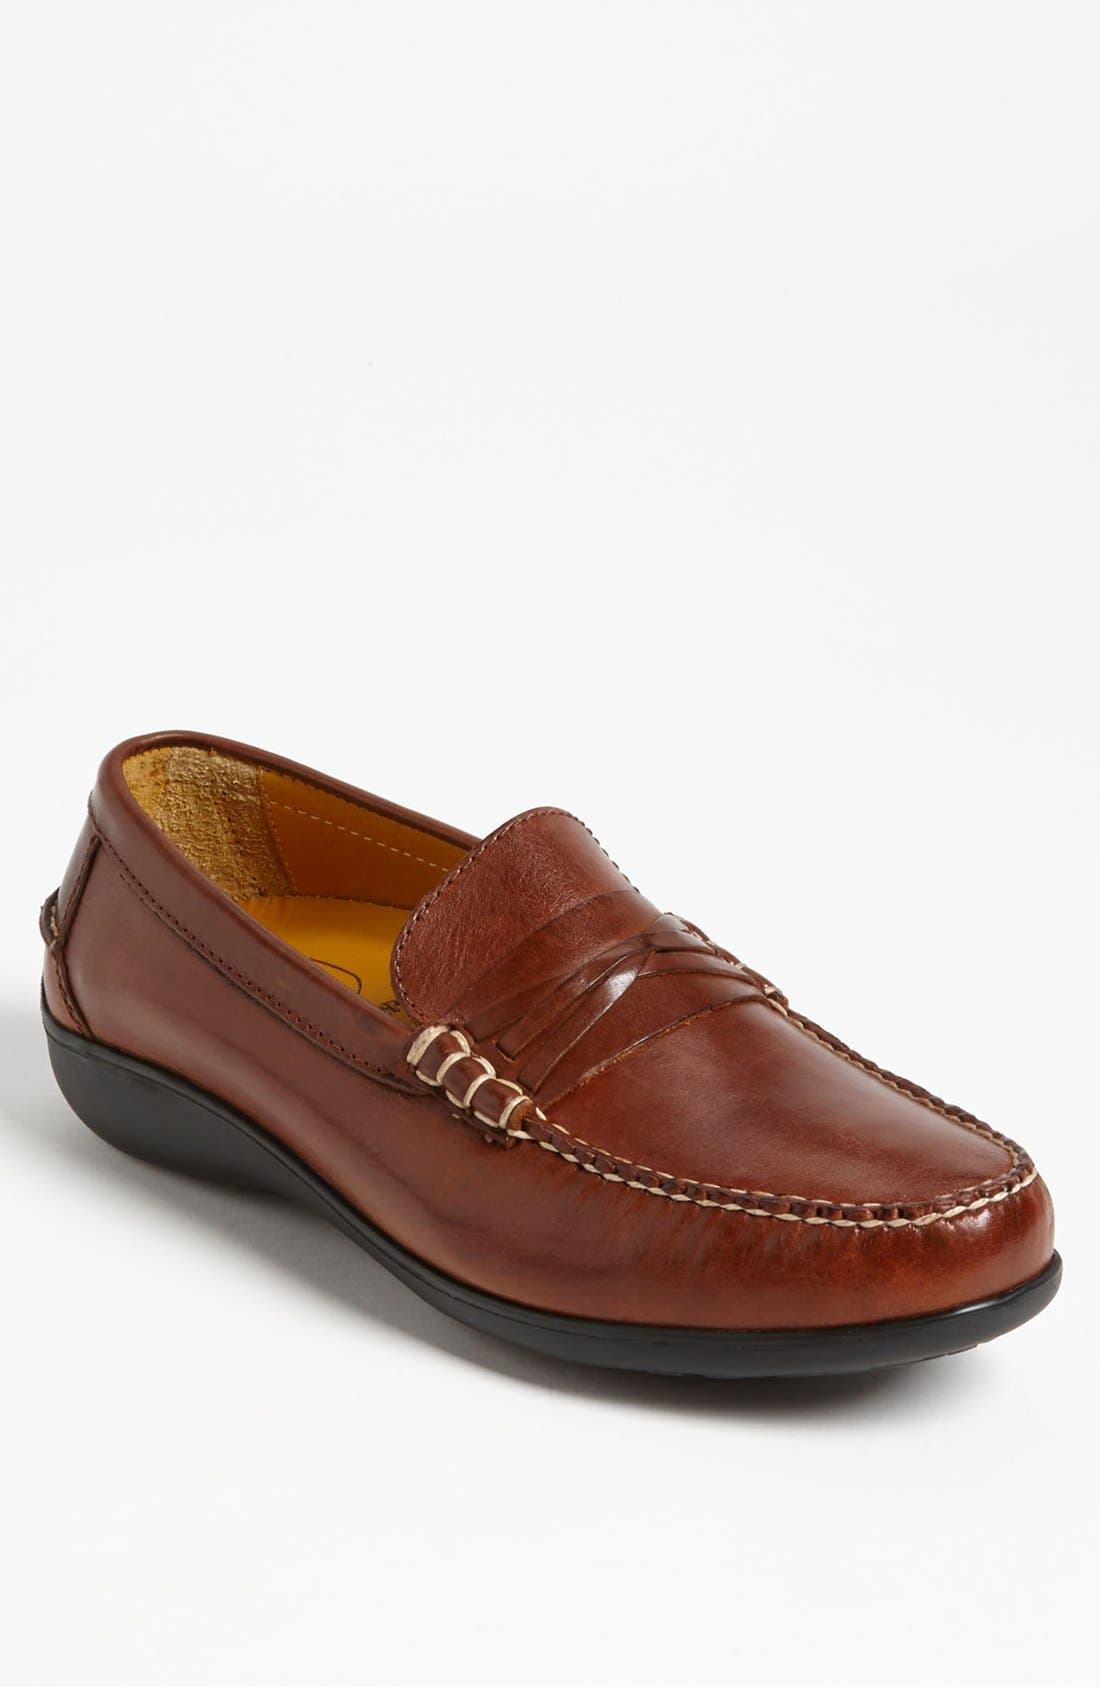 NEIL M 'Truman' Loafer, Main, color, CHESTNUT